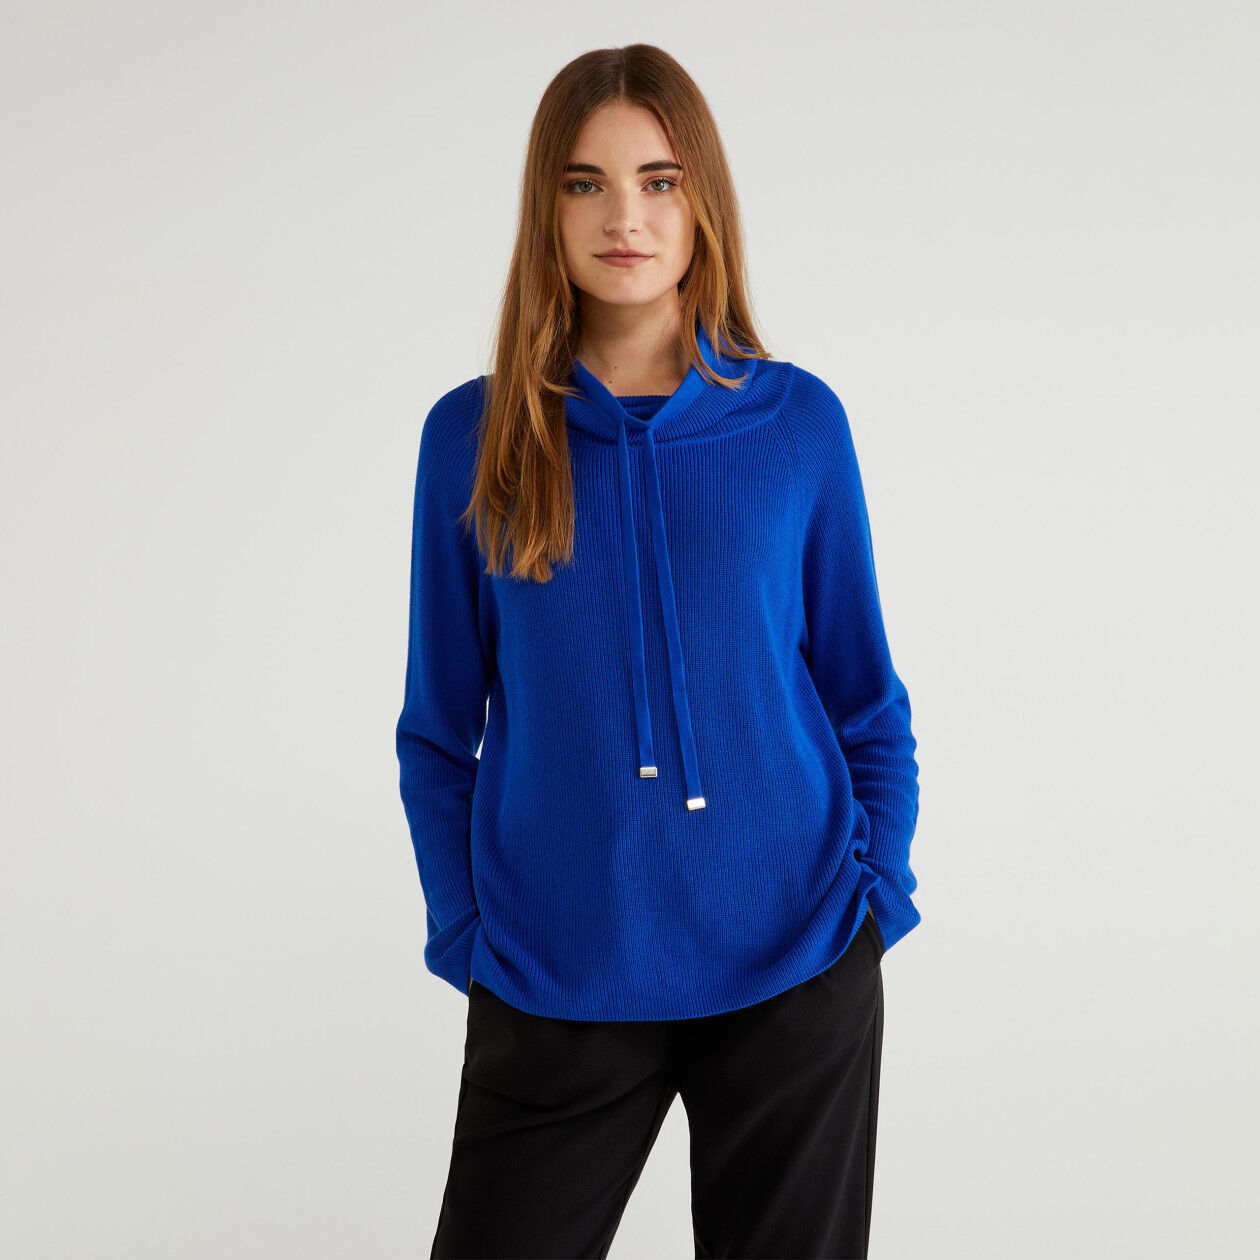 High neck sweater with drawstring